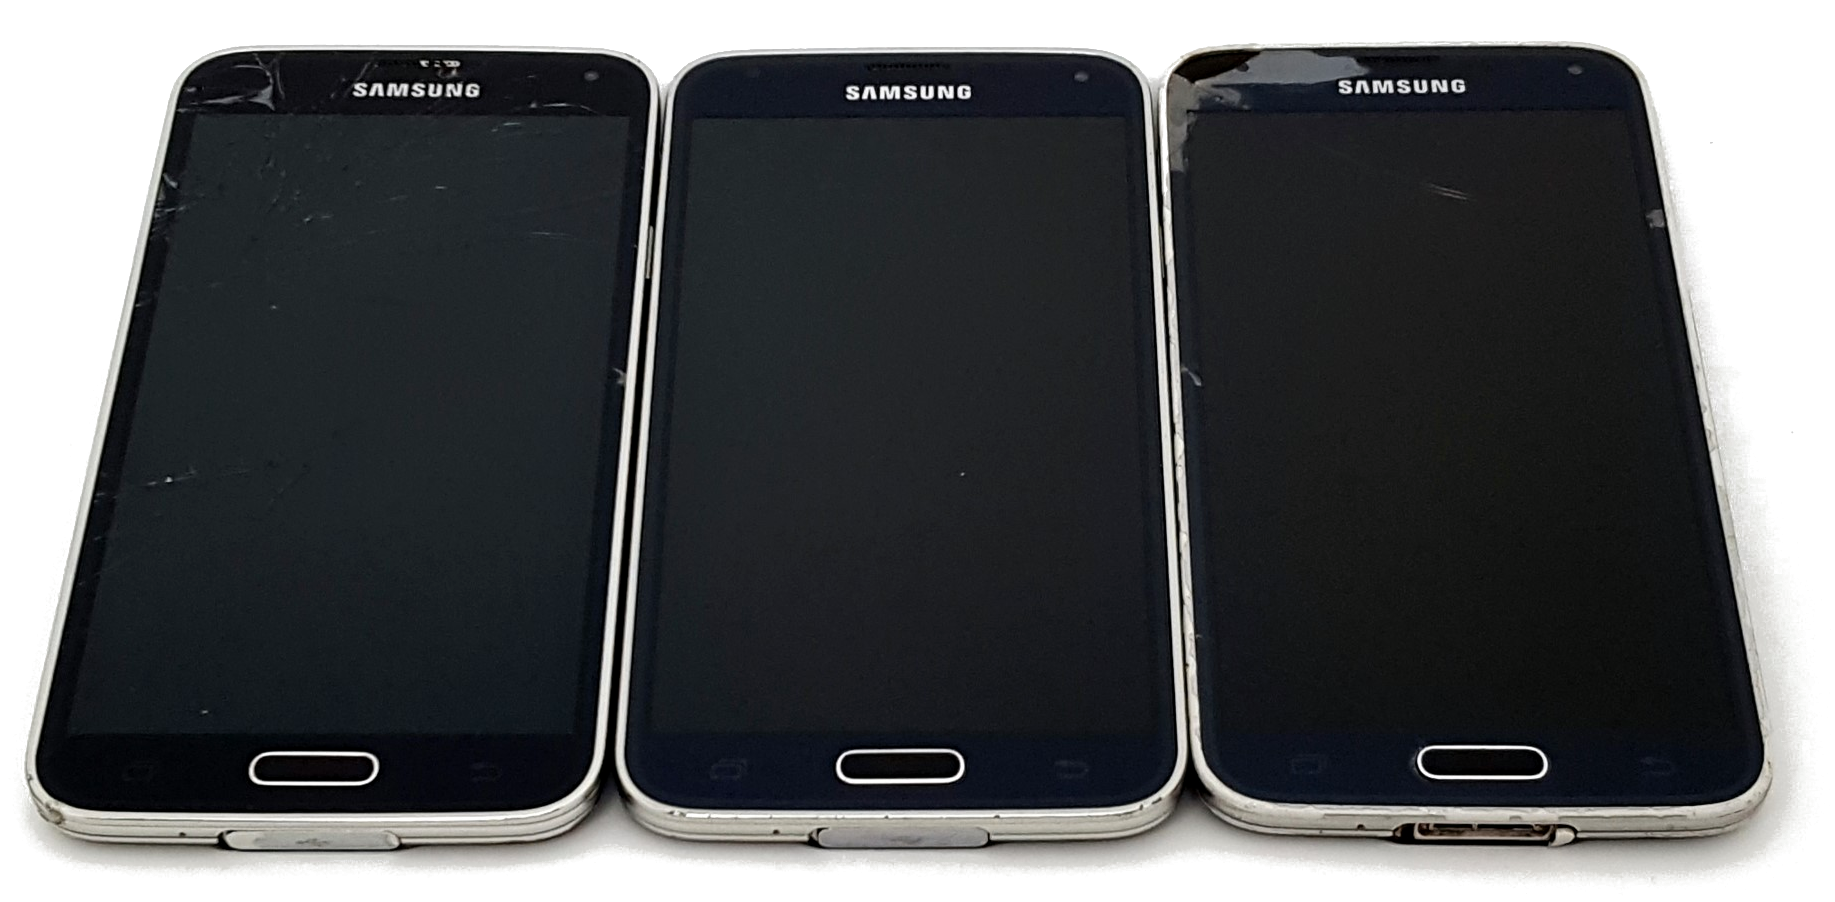 Power on, Bad Digi (Digitizer) images of Wholesale Used Samsung Galaxy S5 Smartphone phones